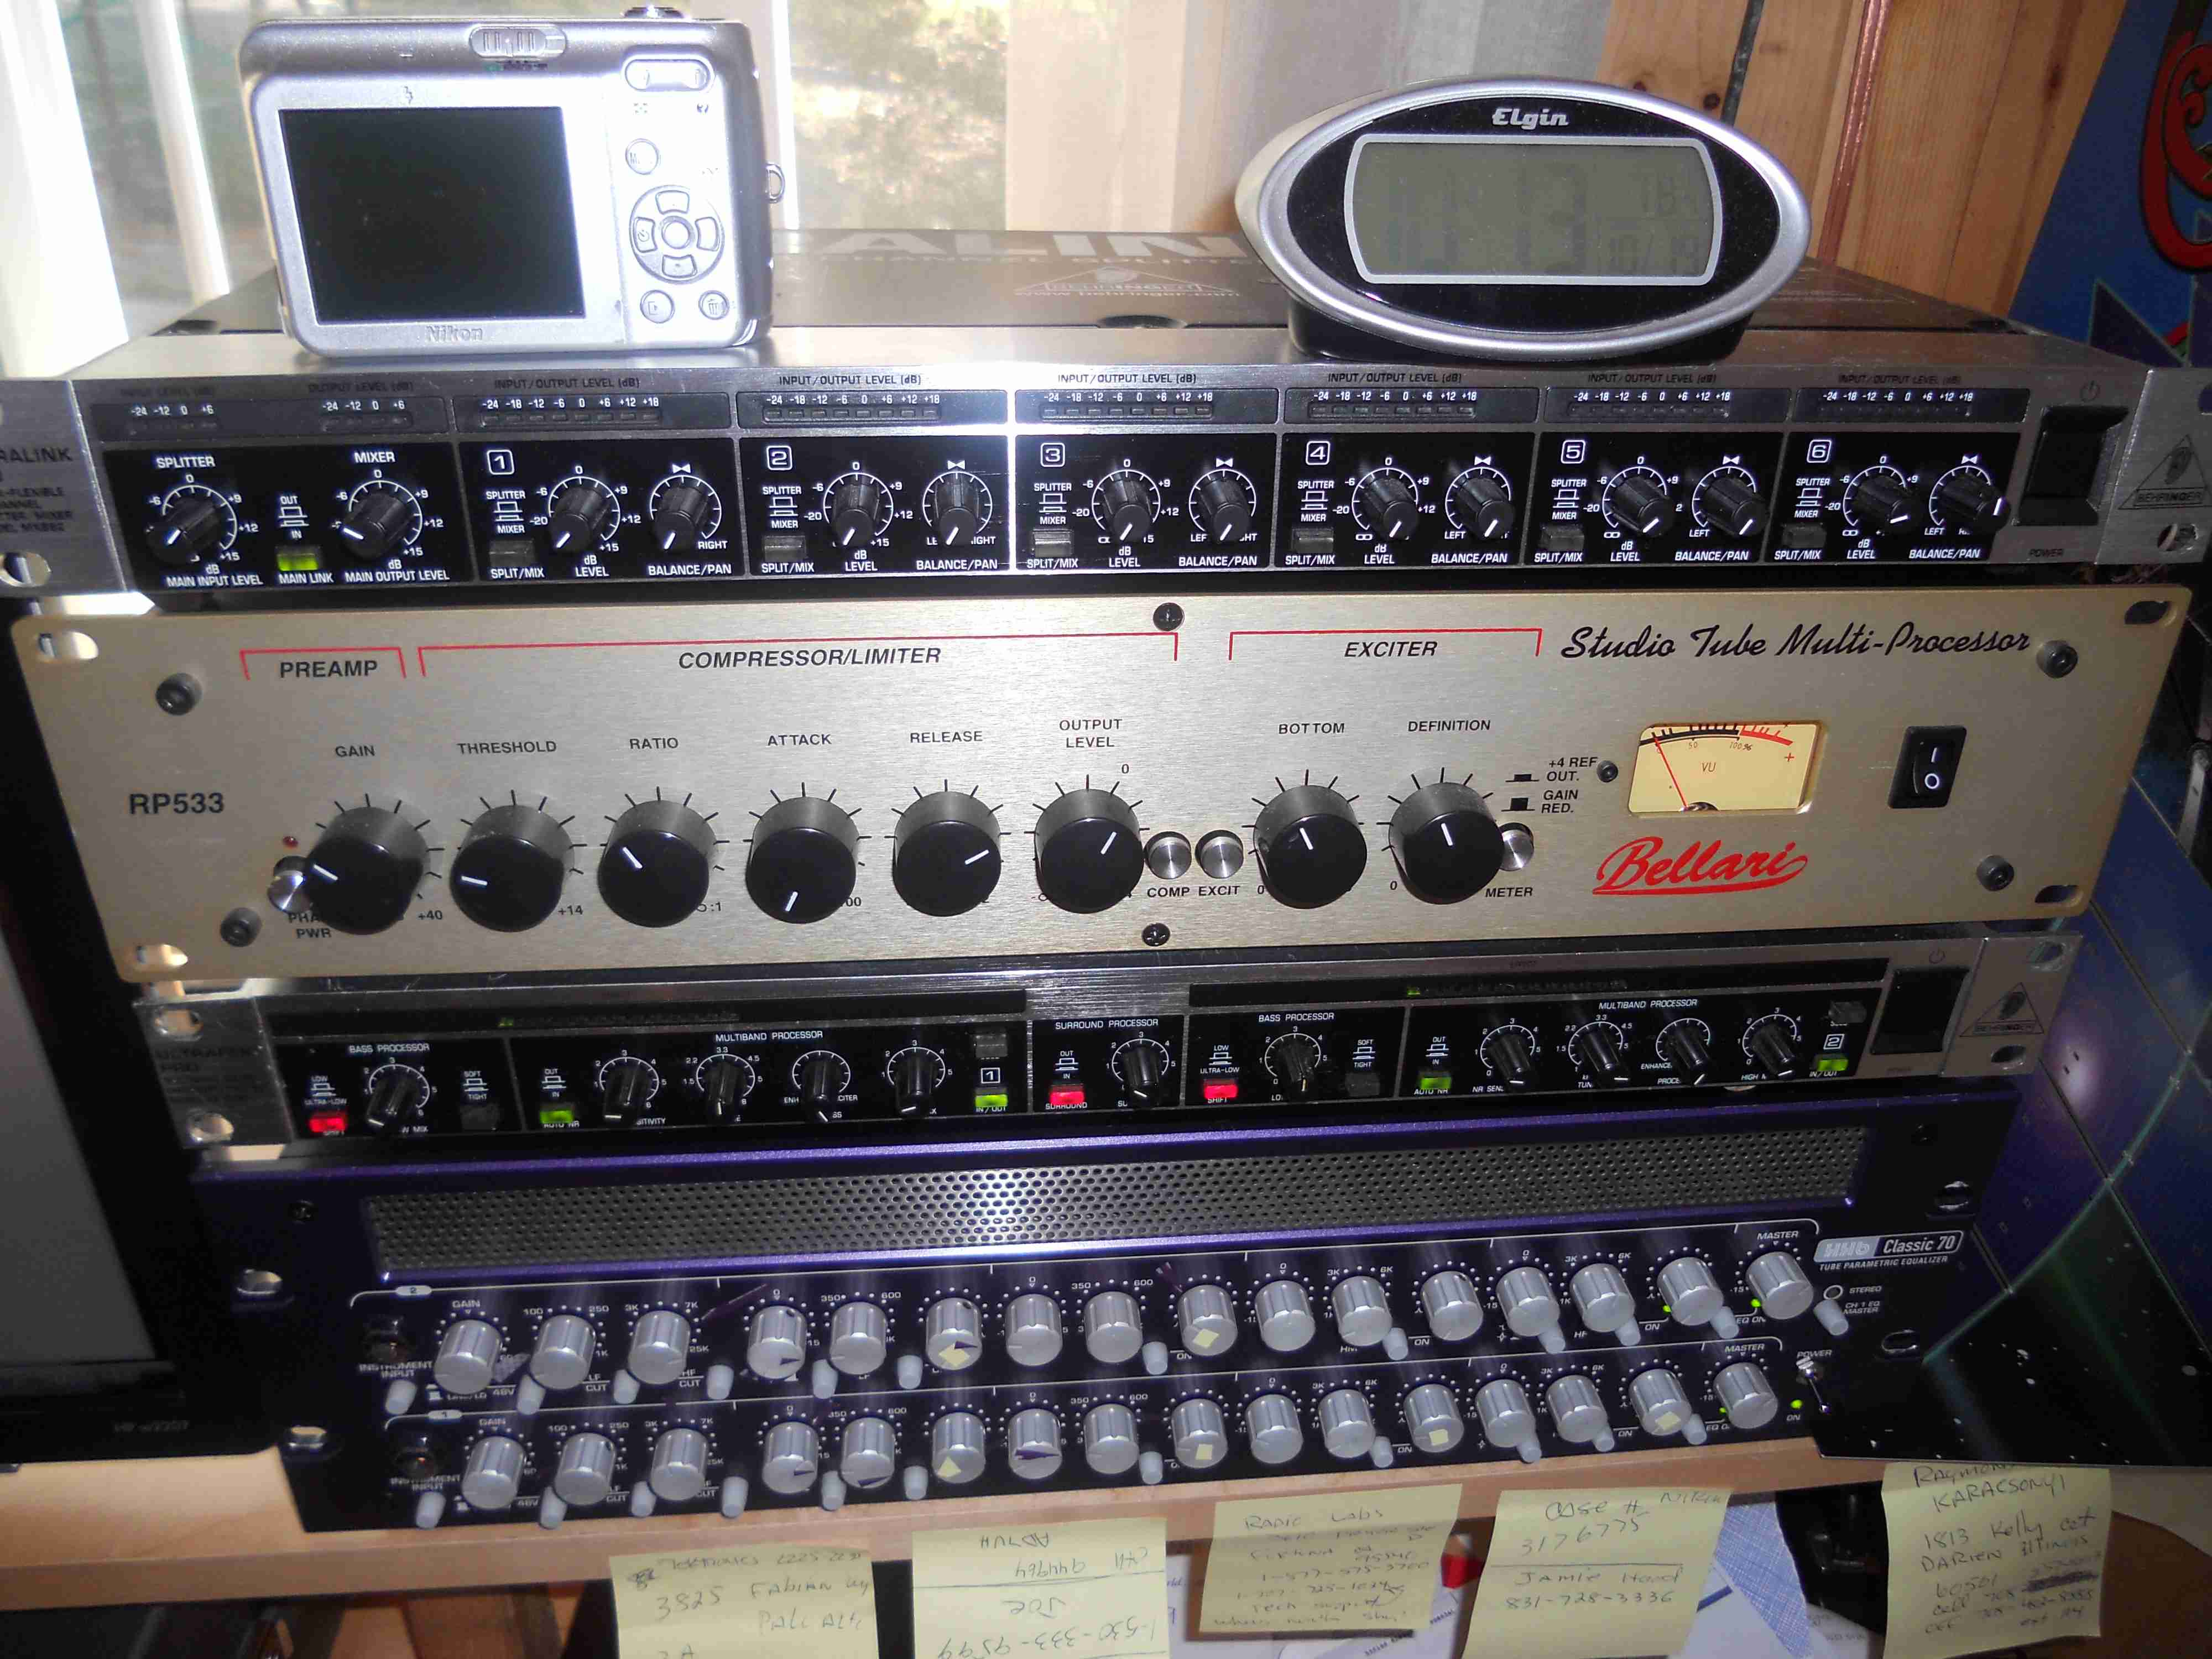 The Other Old KJ6RDK Voodoo Audio Rack!